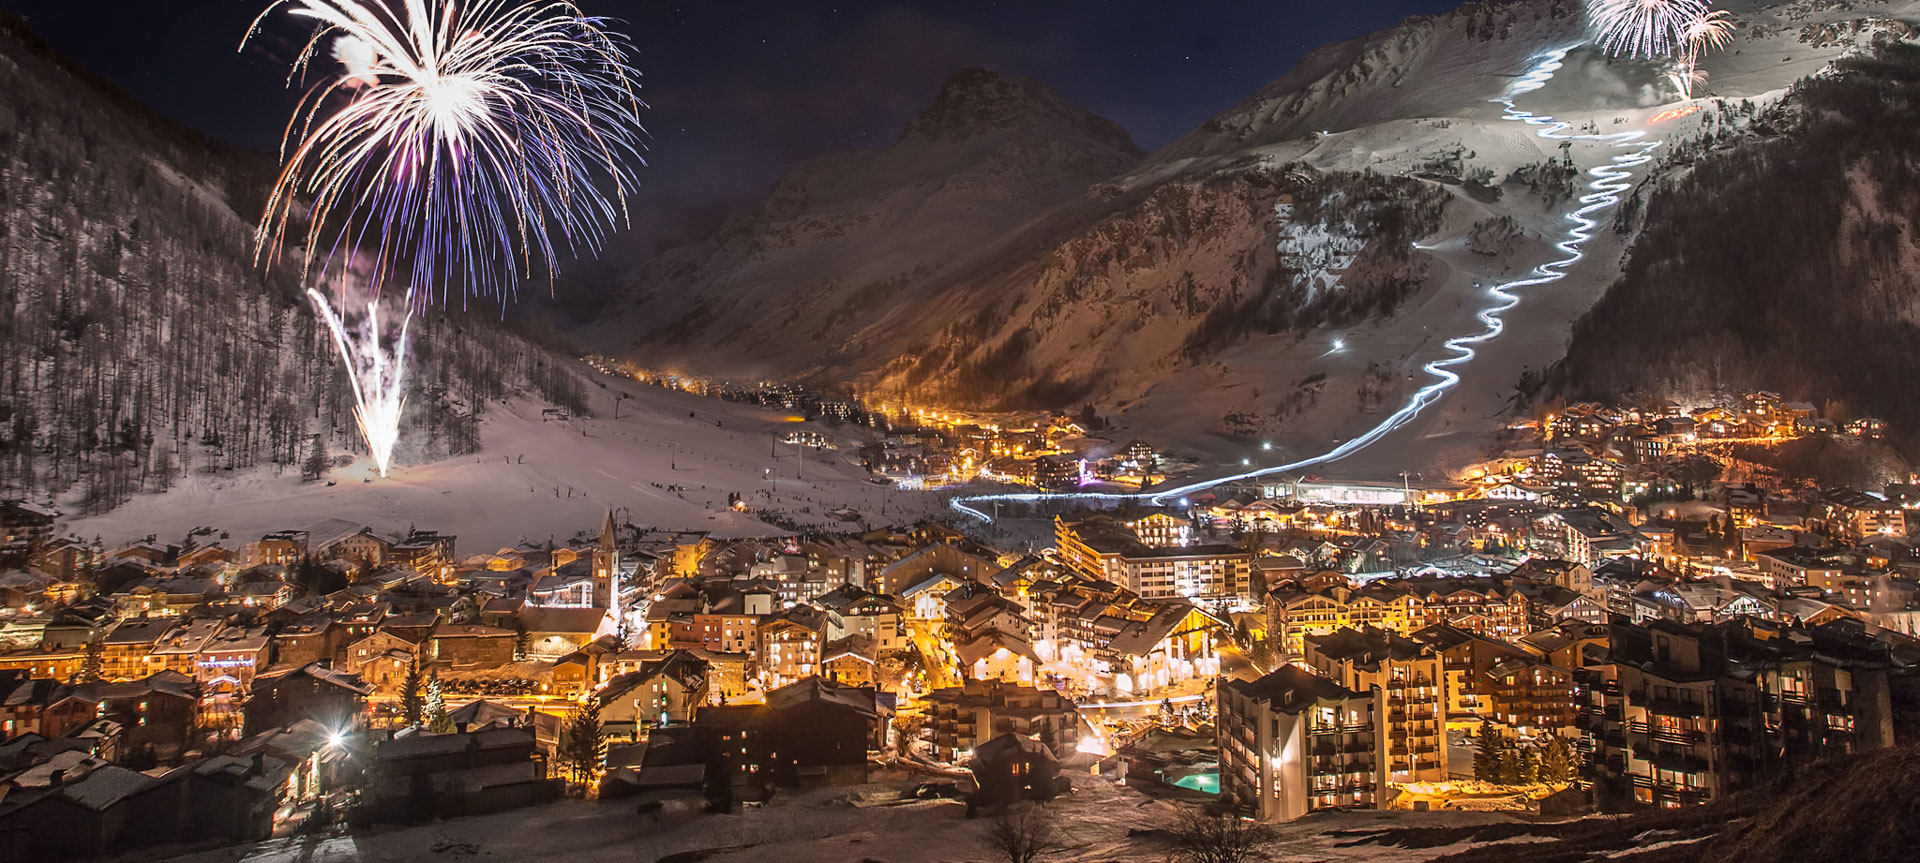 The village of Val d'Isere seen at night light up by fireworks on the nursery slopes and 300 ski instructors doing a torchlight descent of the Face de Bellevarde